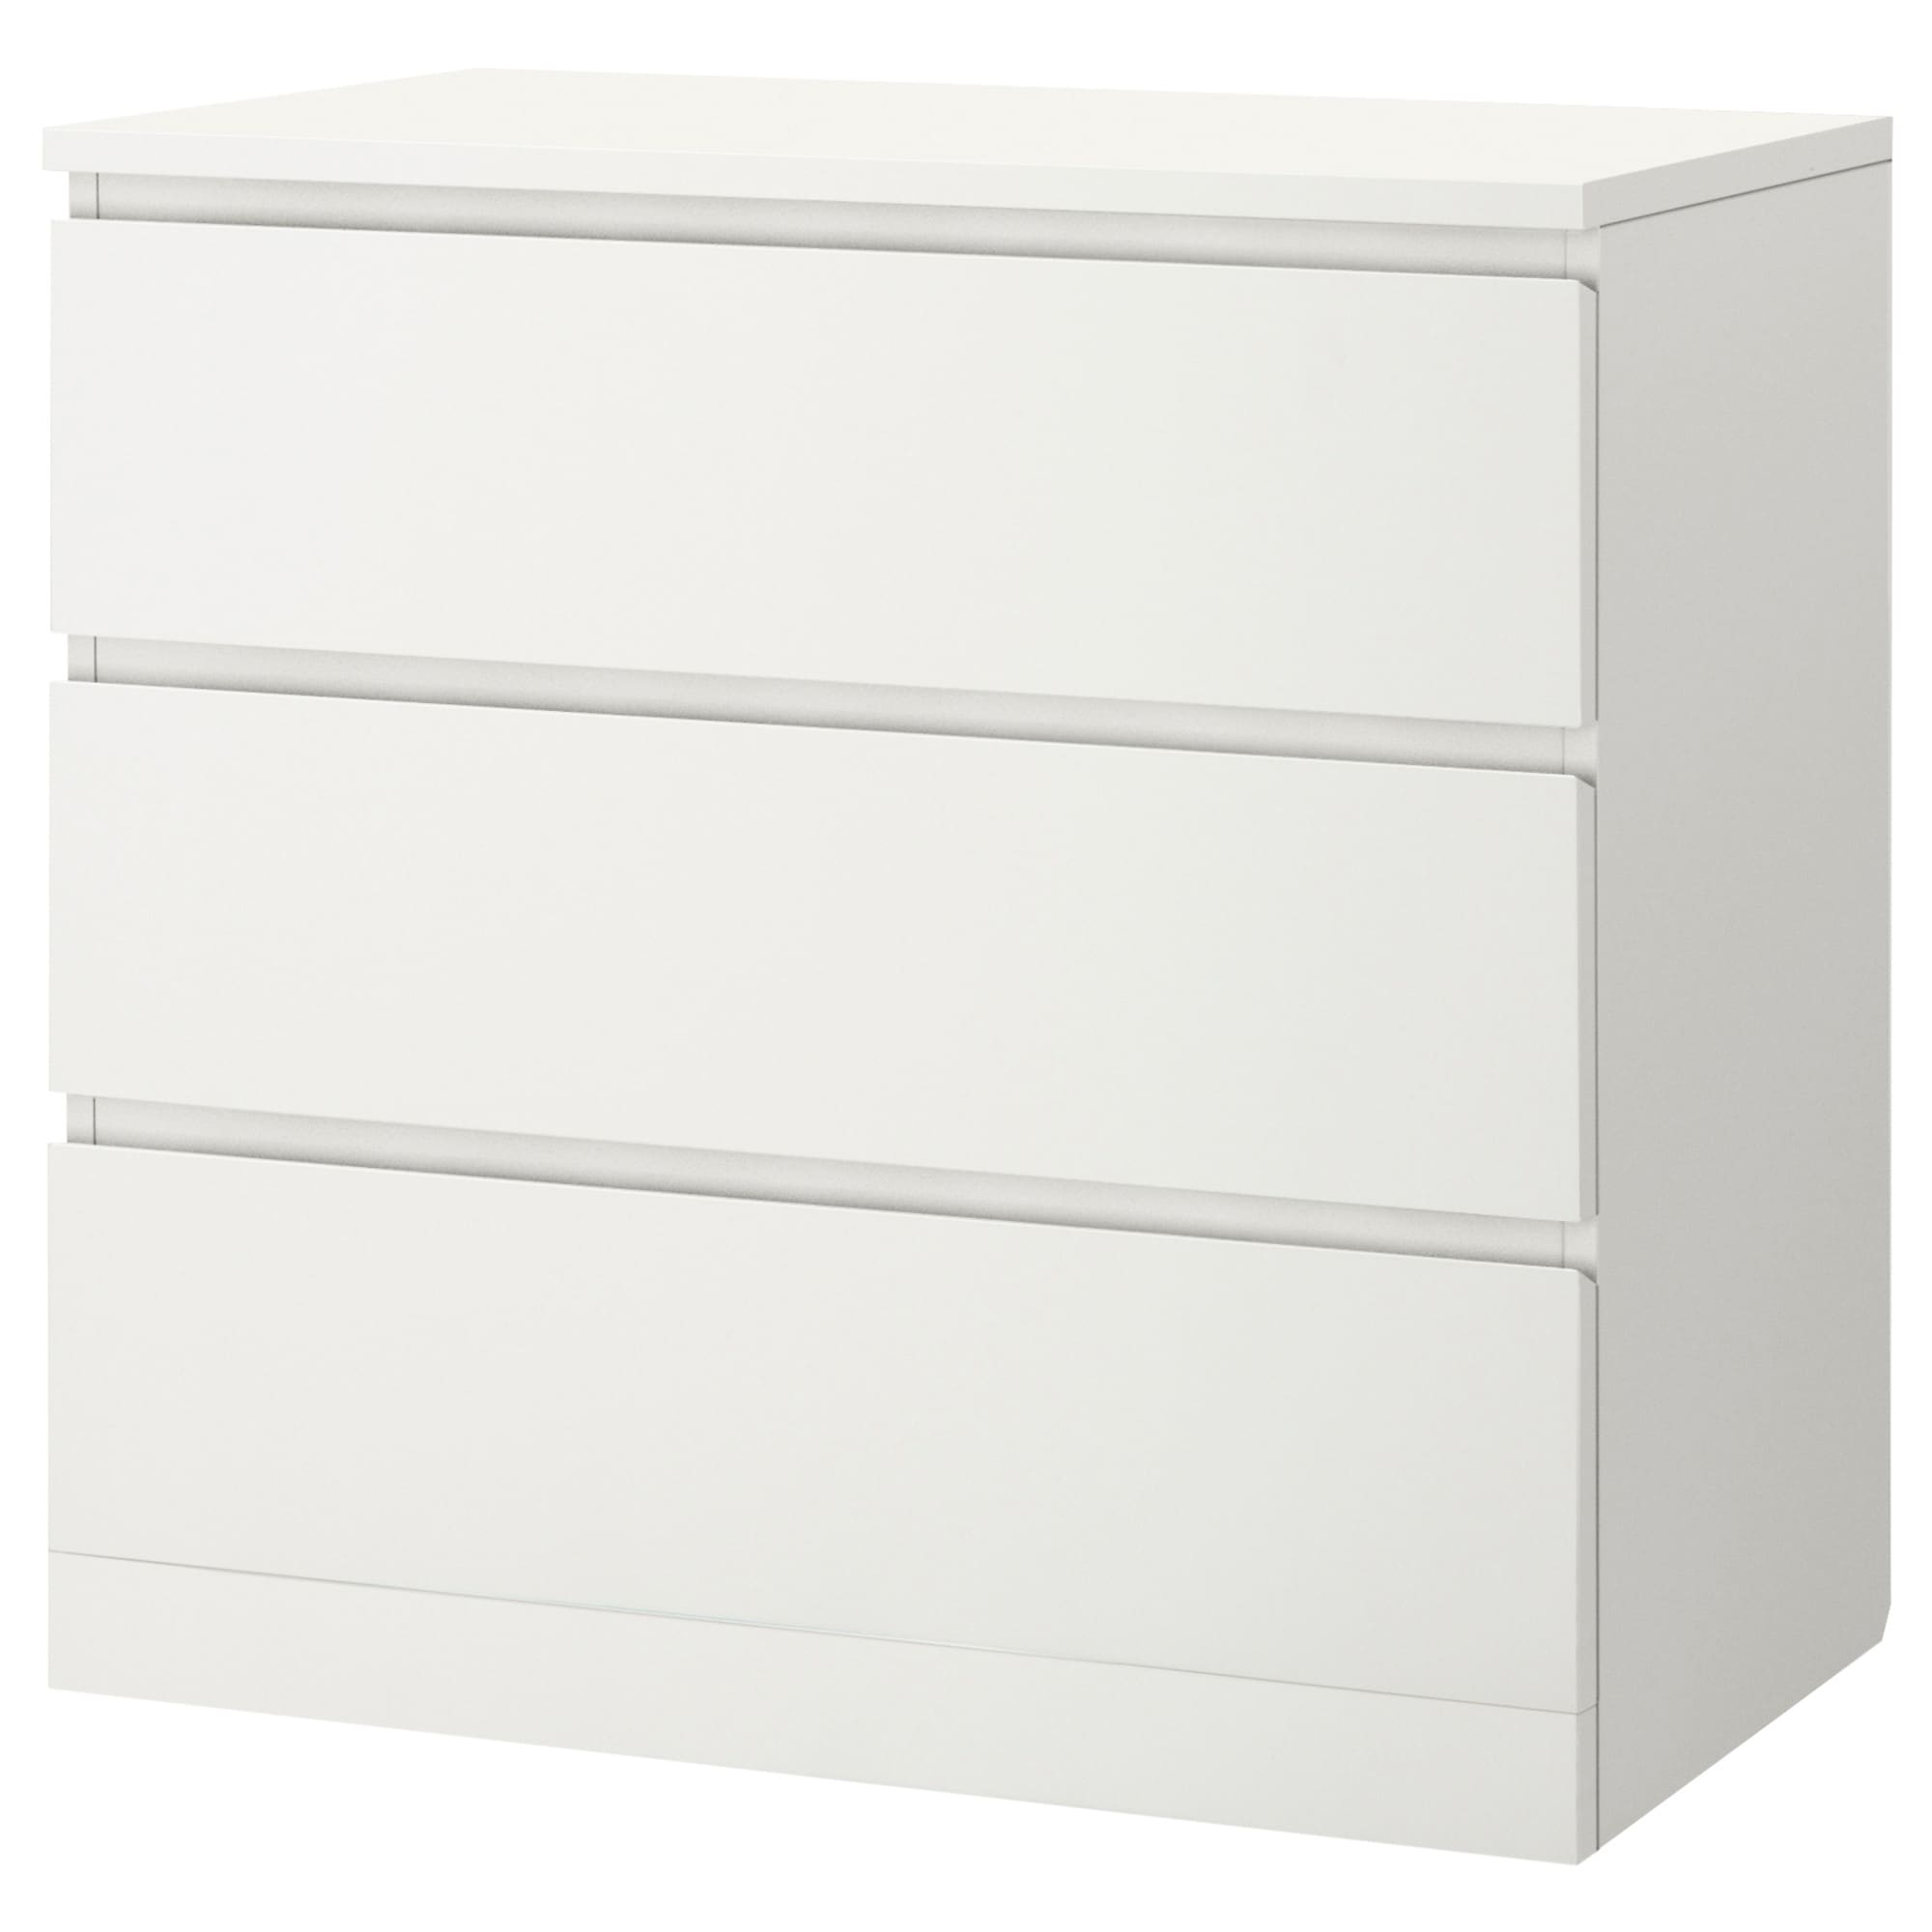 . MALM 3 drawer chest   white   IKEA